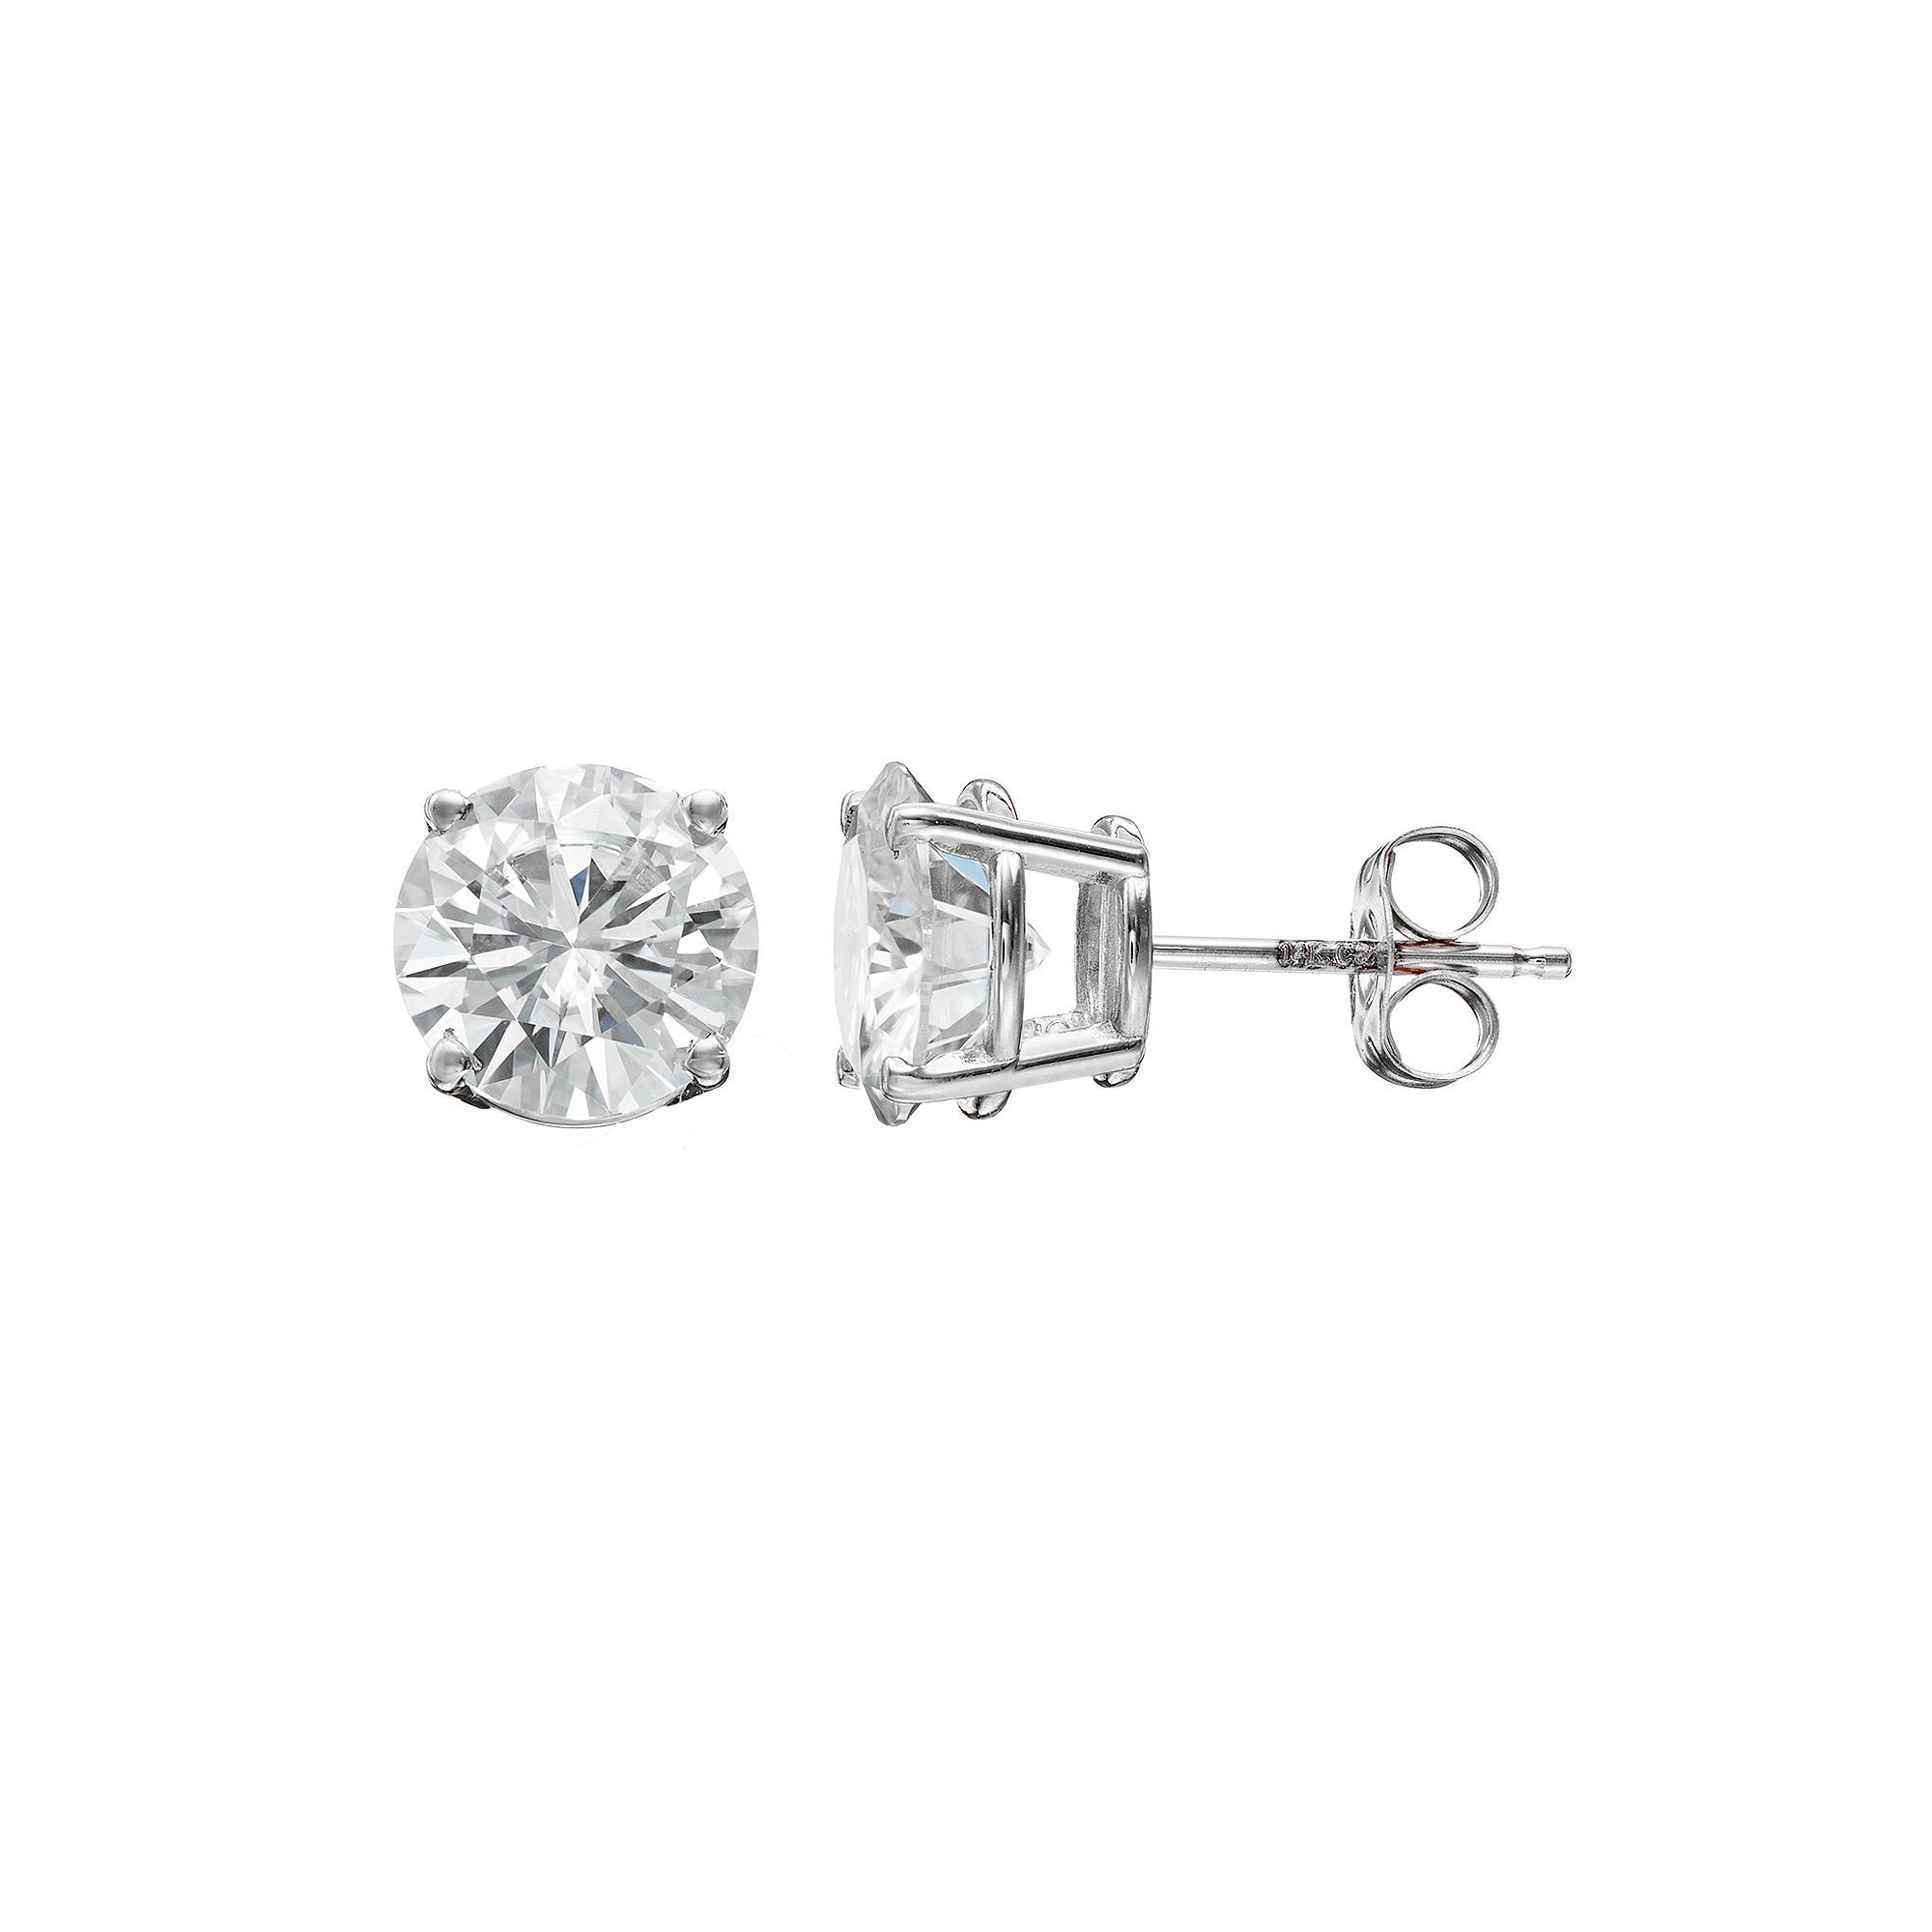 ew pear marquise product solitaire earrings la